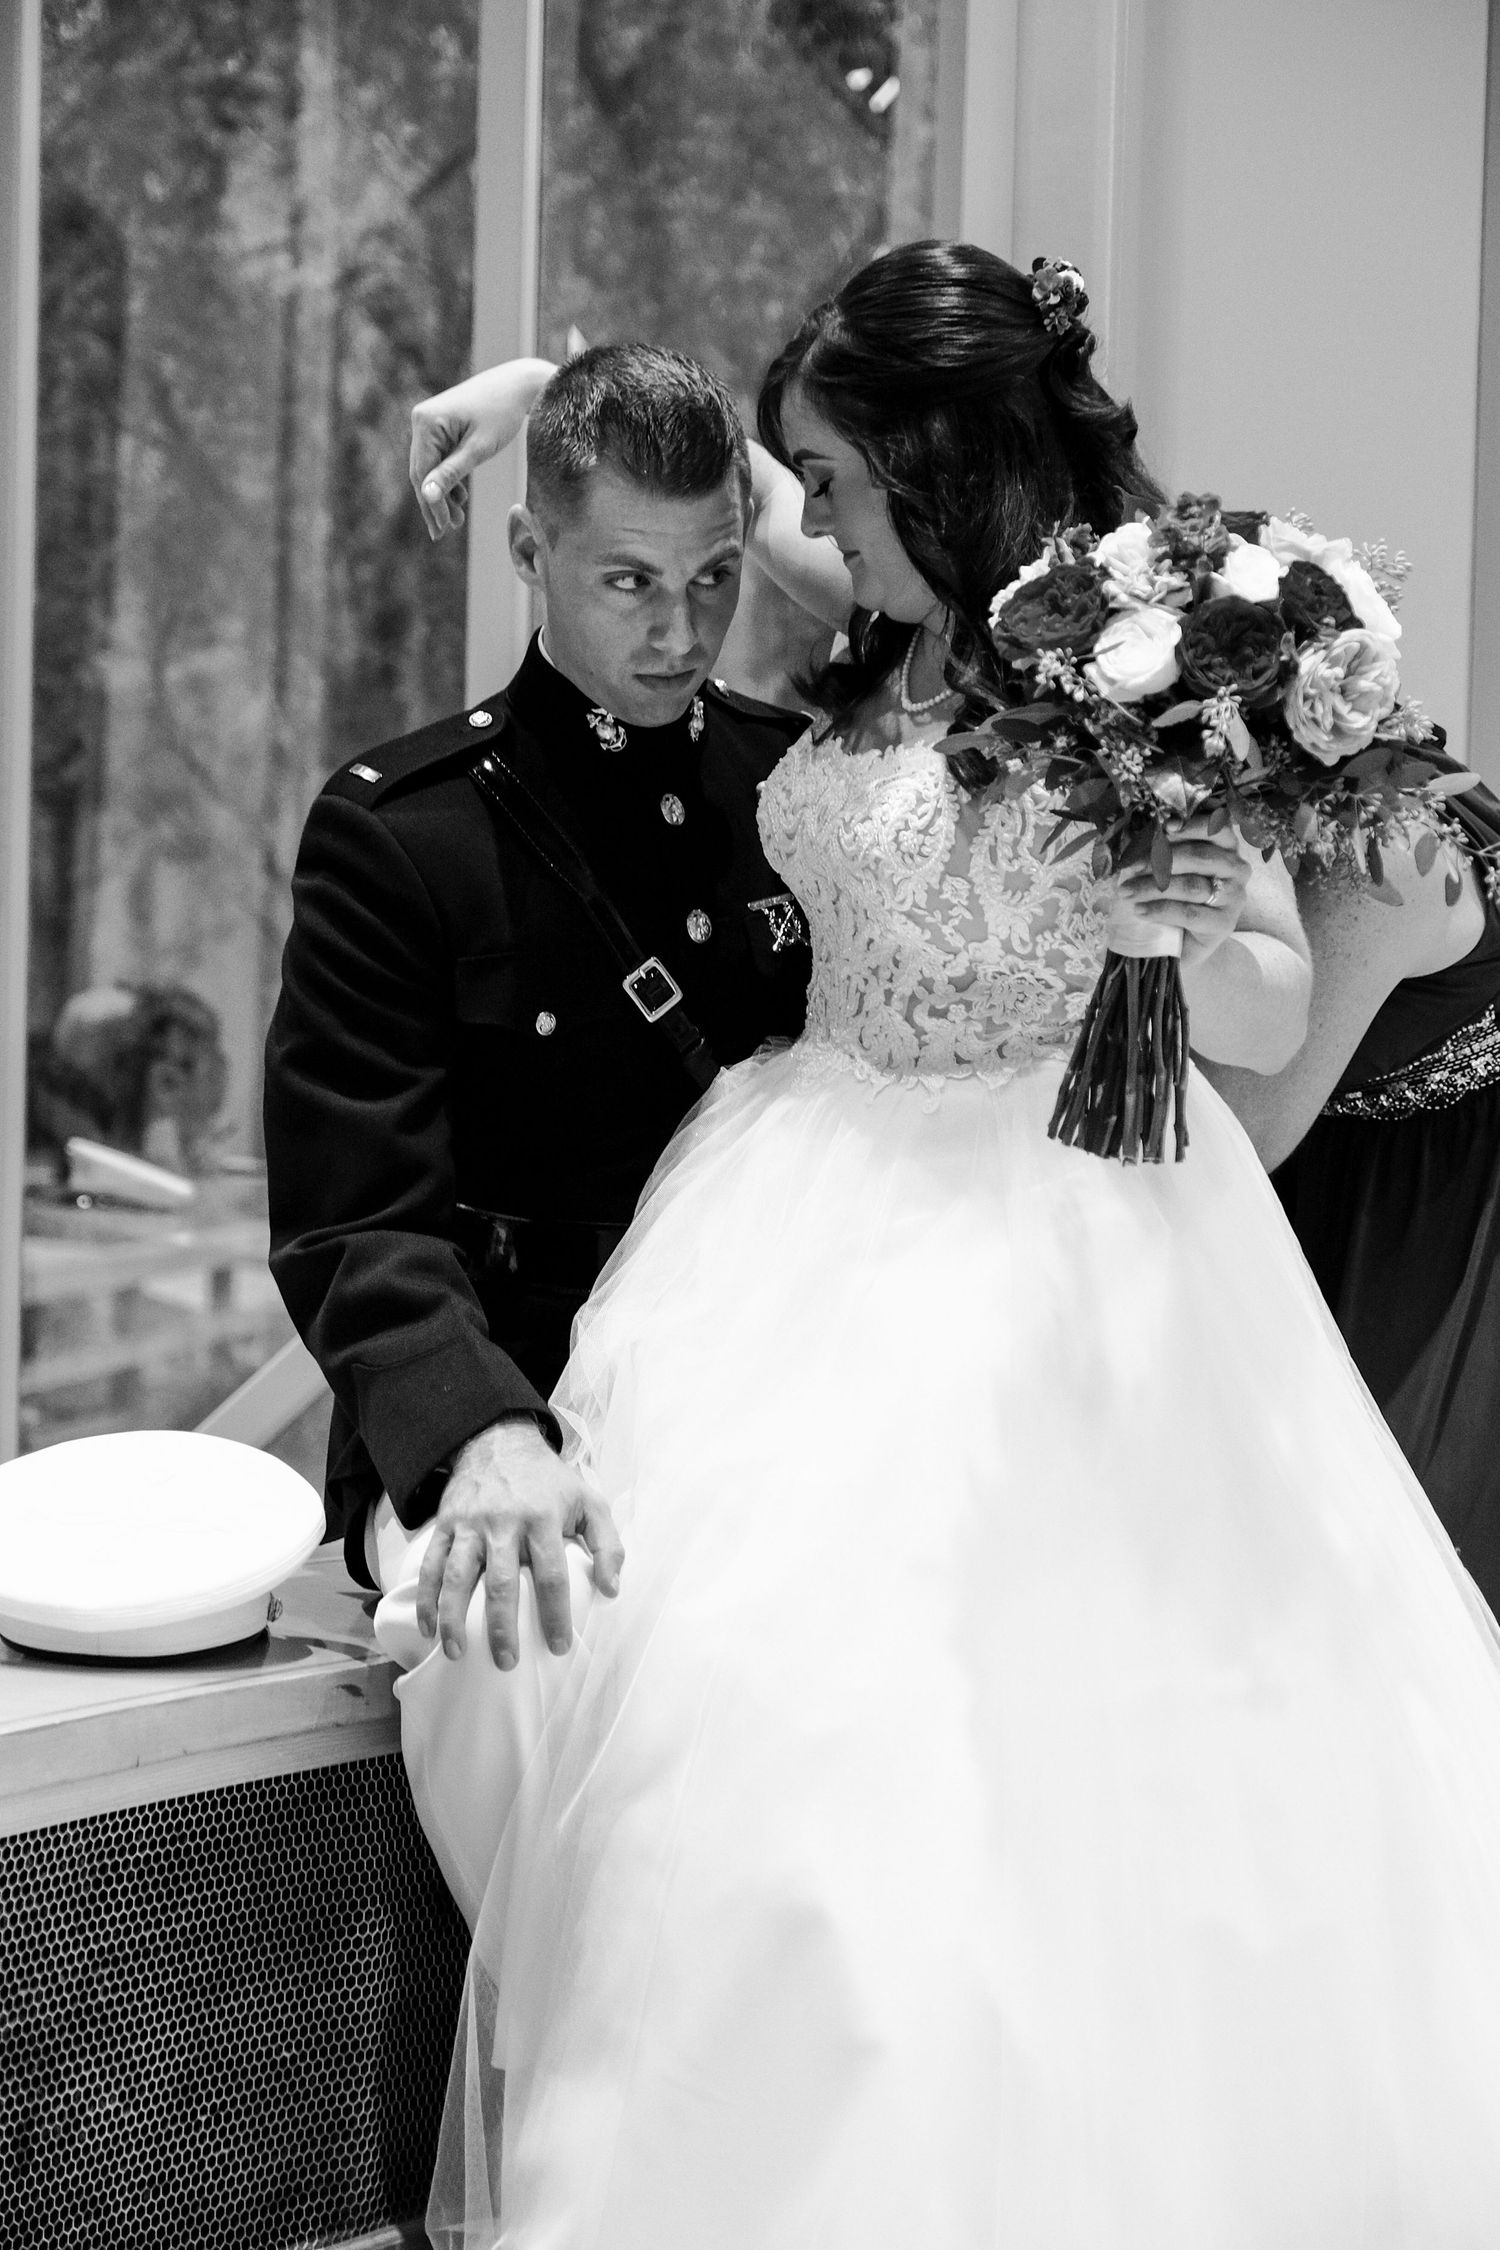 Black and white photograph of a bride sitting on the grooms lap after their wedding at the Baughman Center.